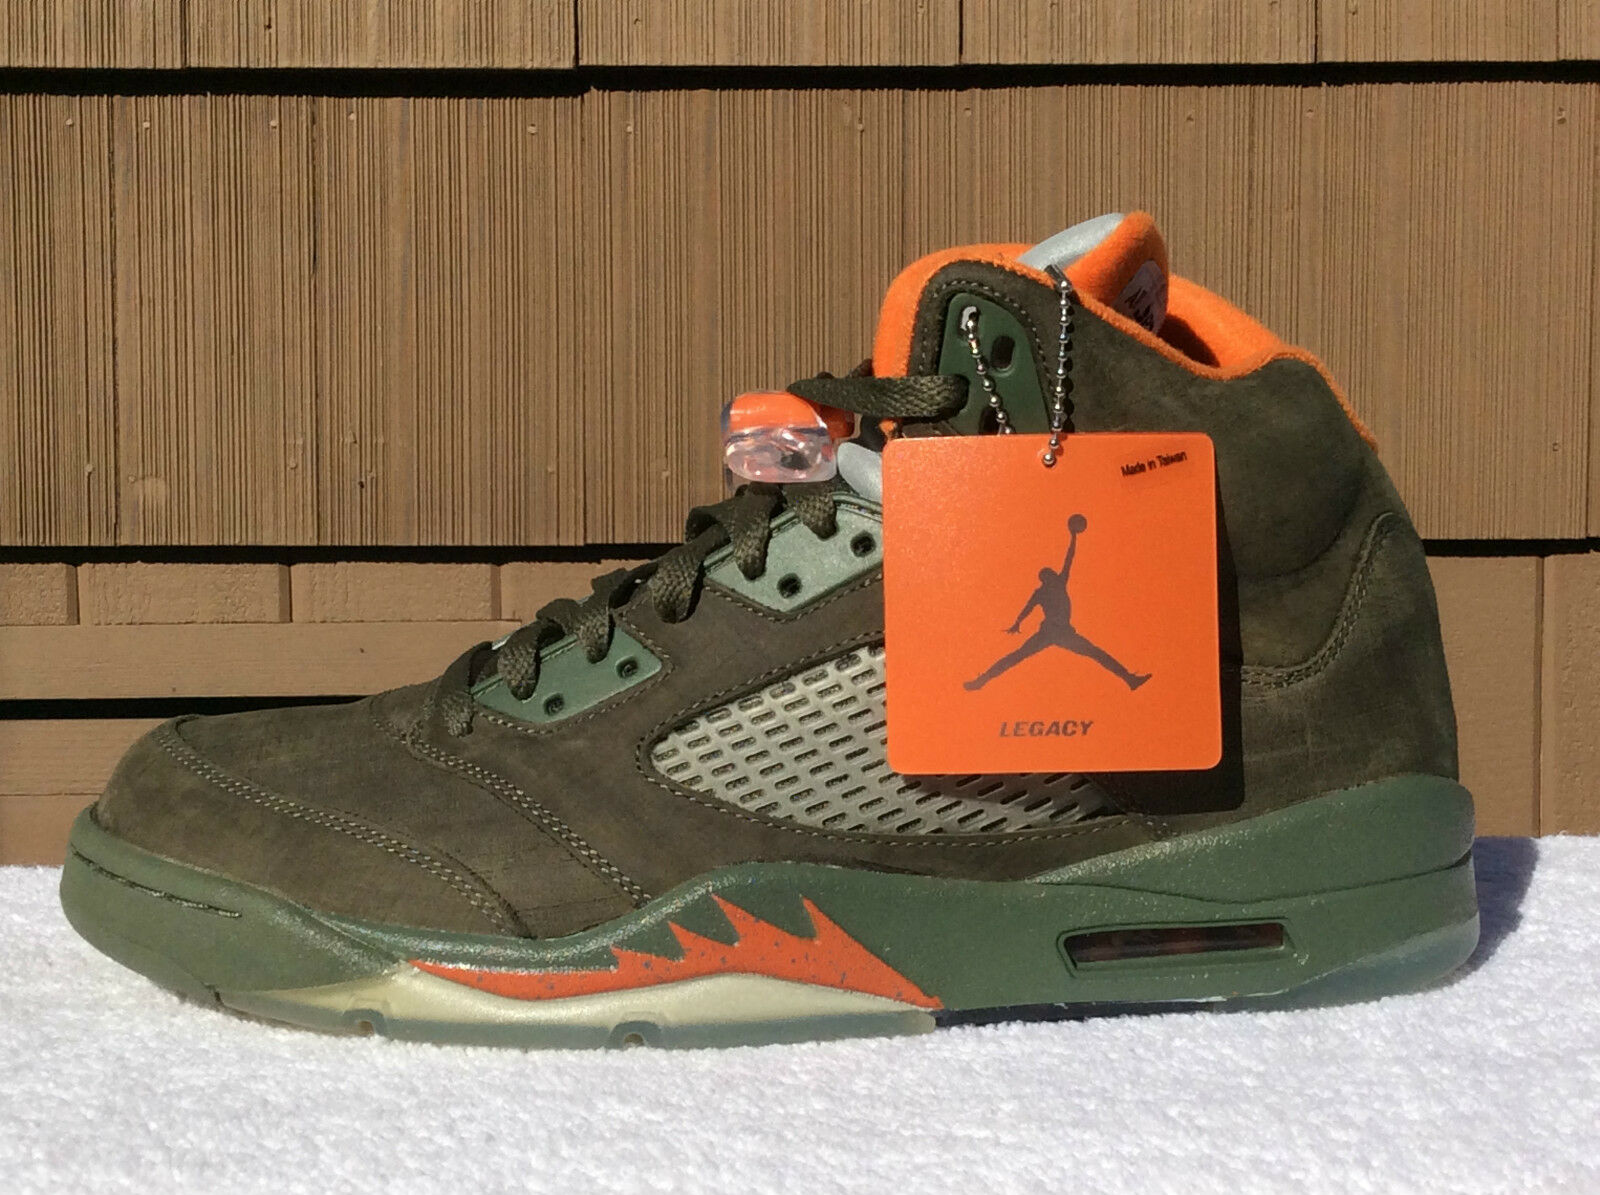 Nike Air Jordan V 5 LS Army Olive/ Orange Size 10.5 DEADSTOCK 314259-381 (2006)